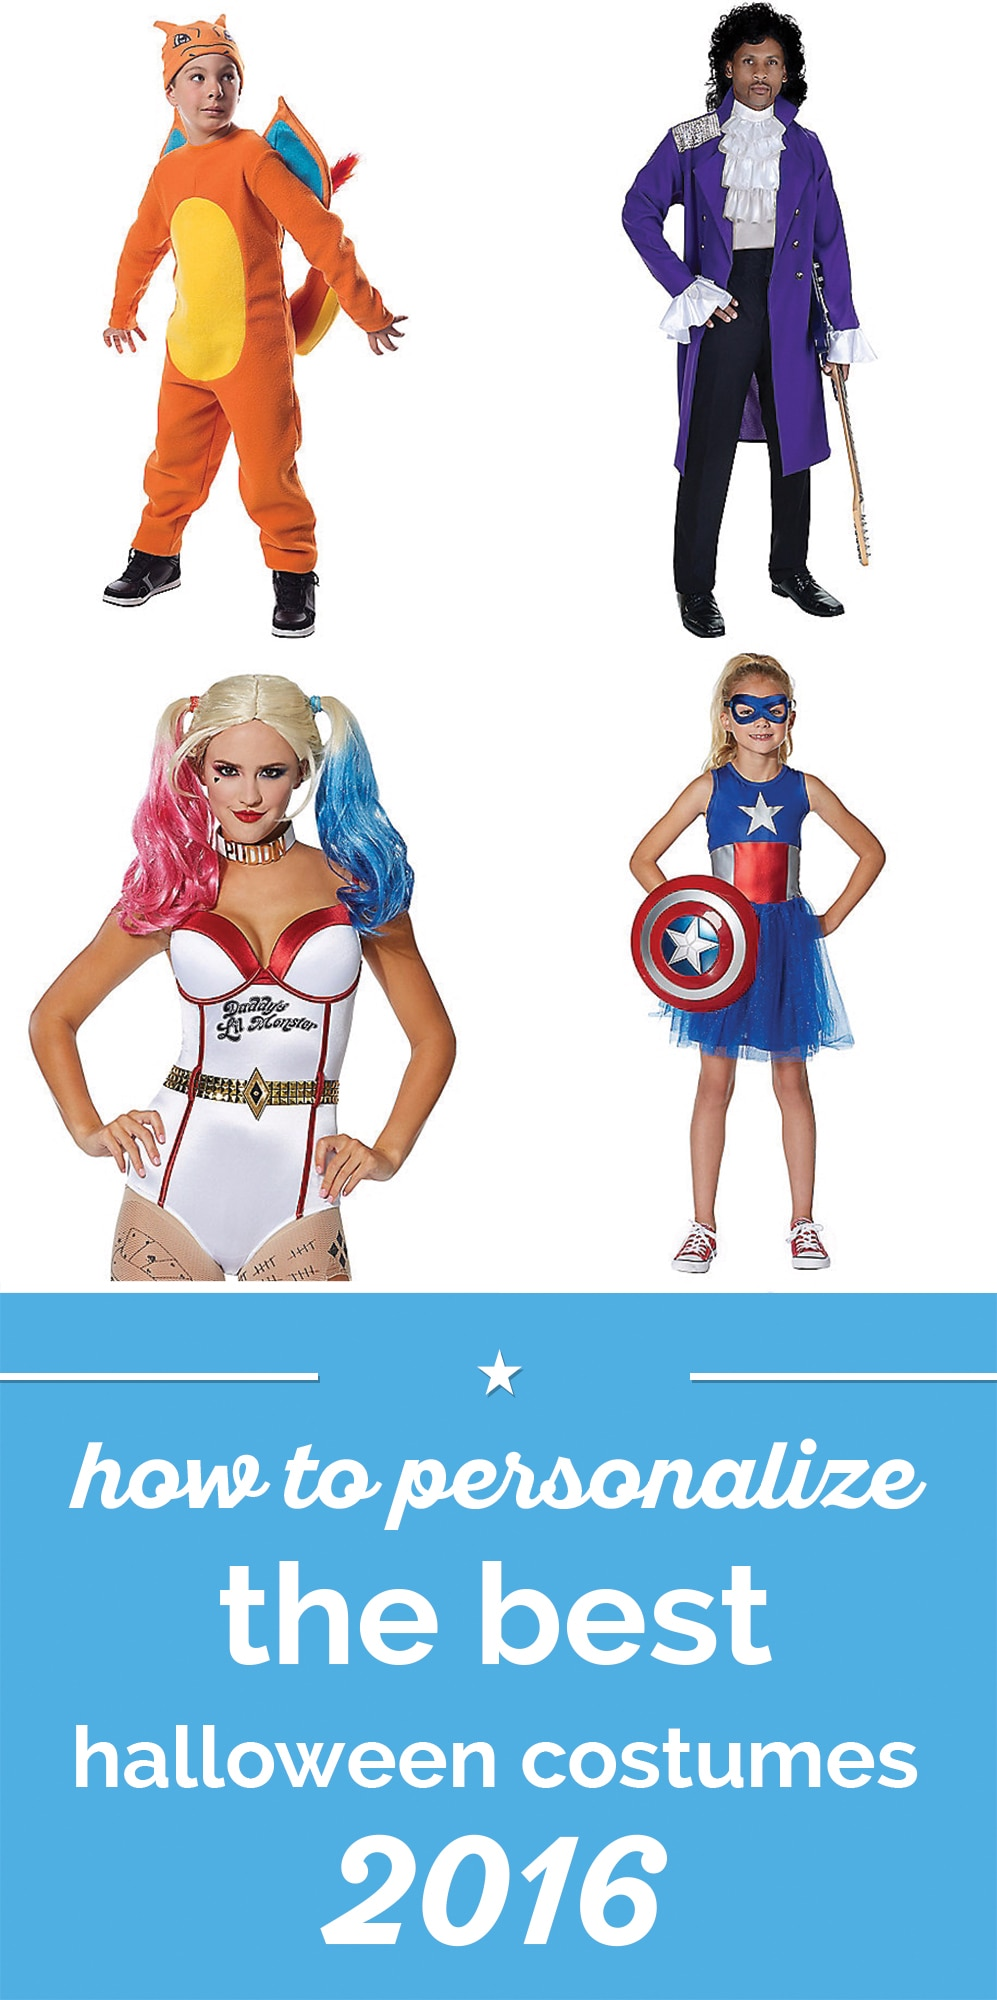 How to Personalize the Best Halloween Costumes 2016 | thegoodstuff